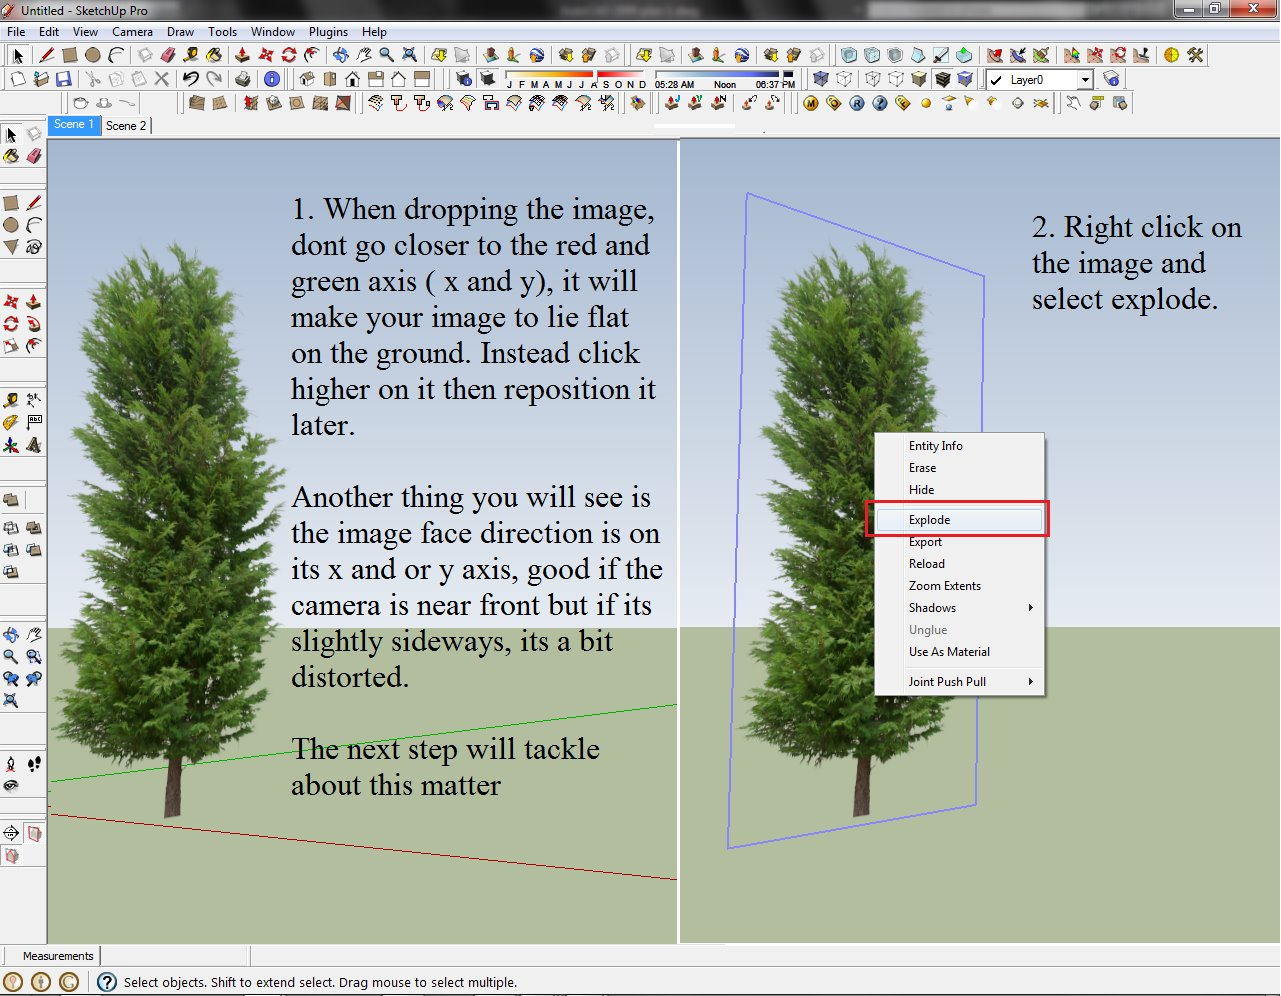 SKETCHUP TEXTURE: TUTORIAL FOR RENDERING TREES AND SHRUBS in